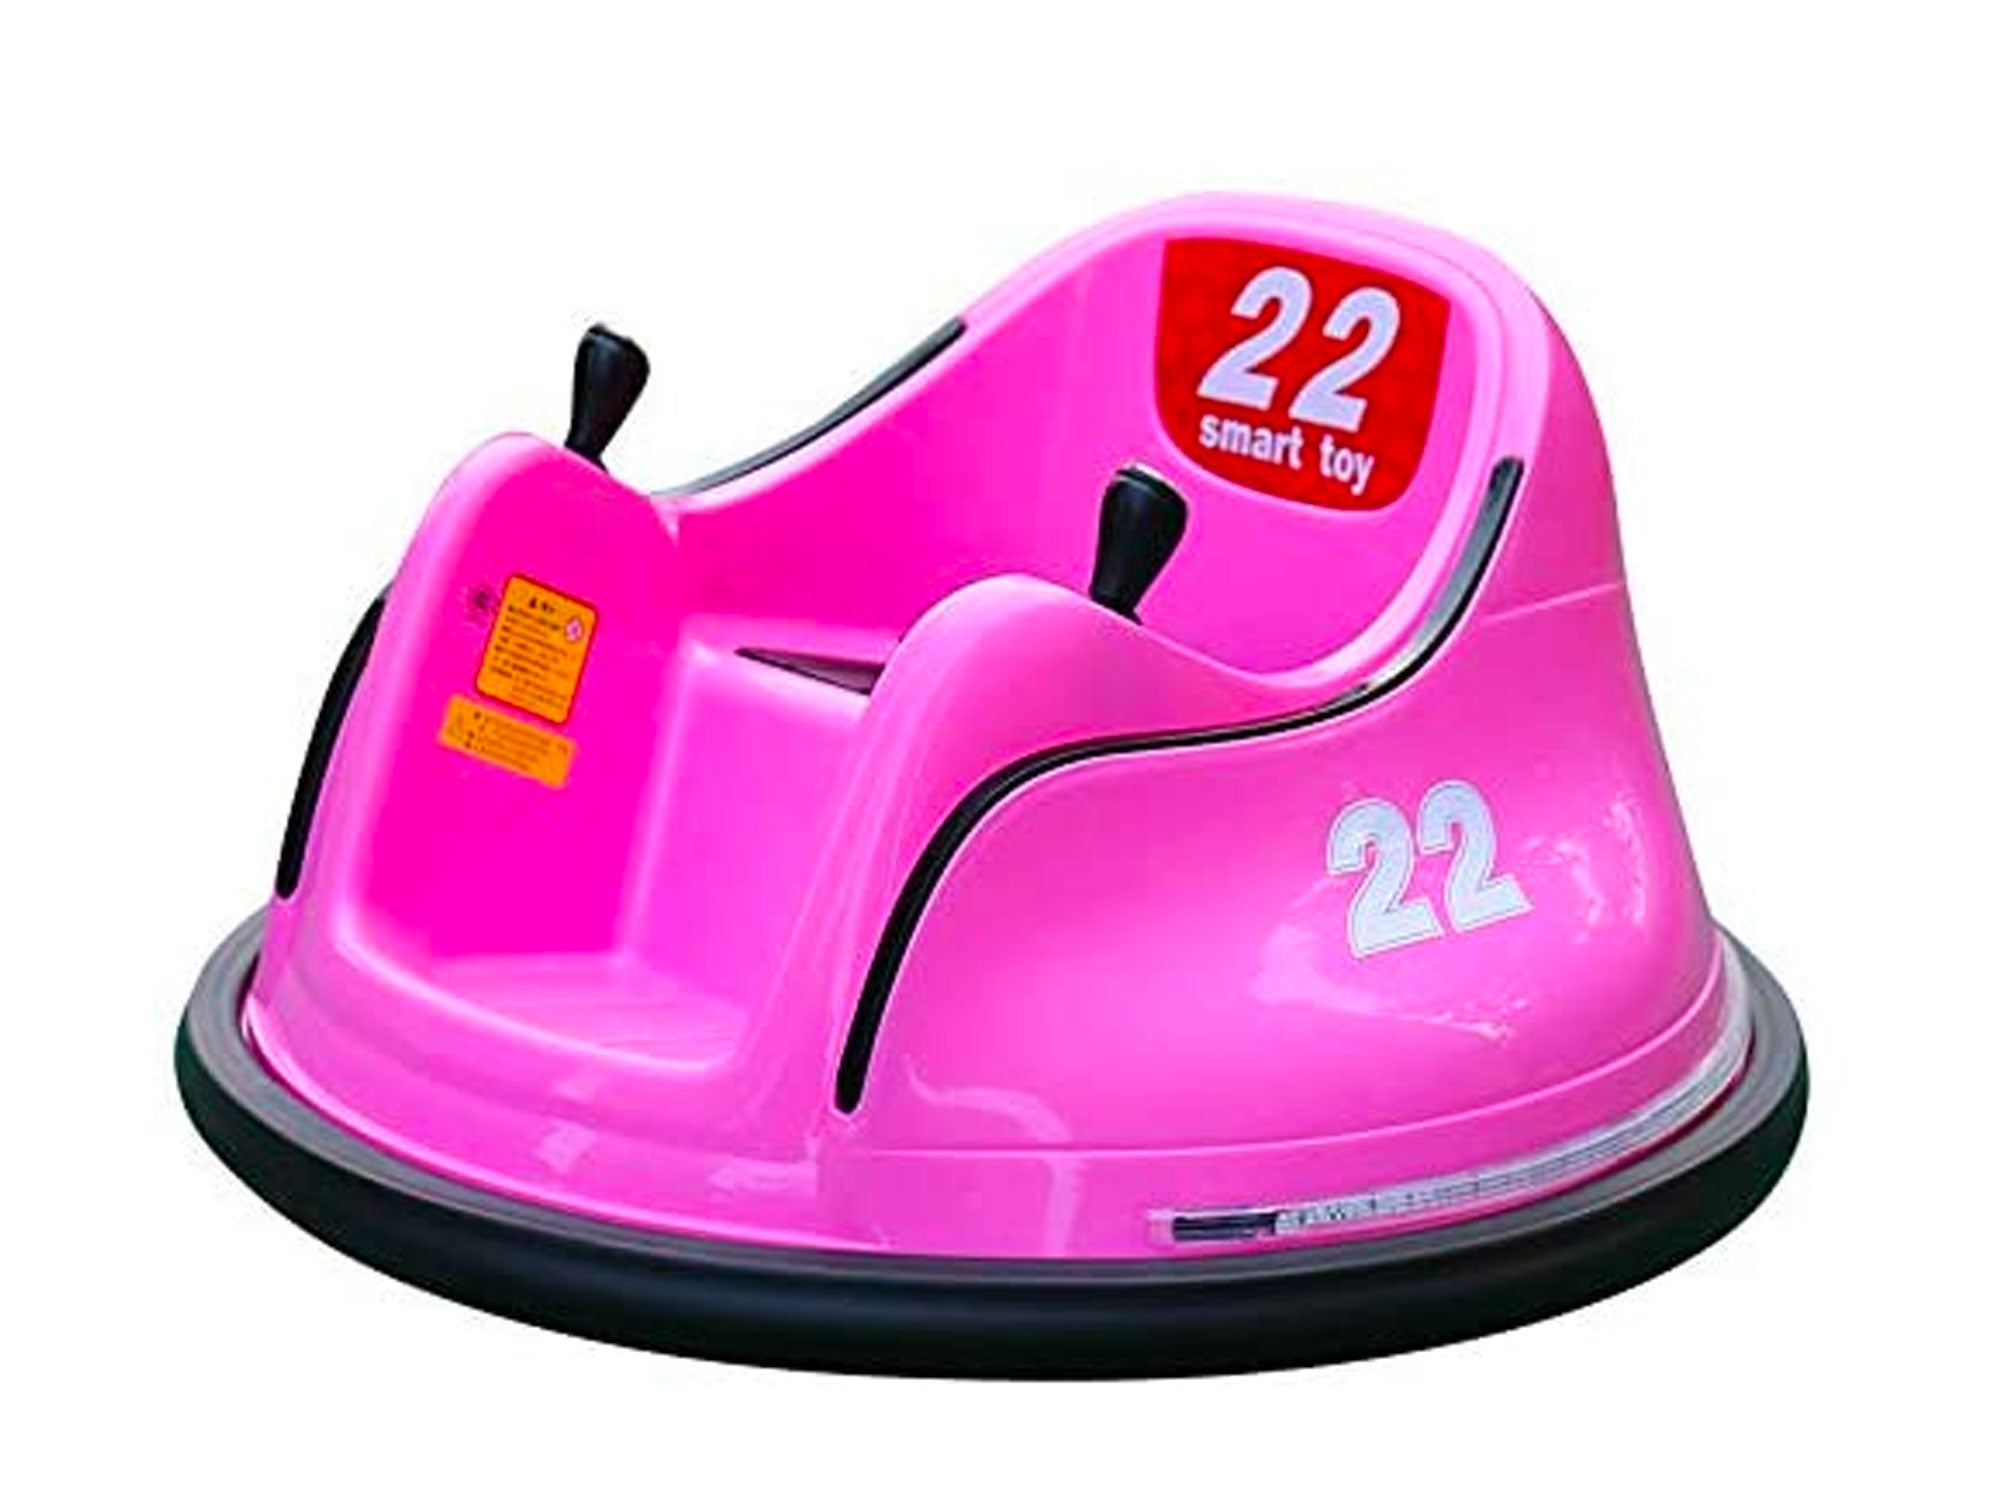 Tenflyer Bumper Car for Kids, DIY Race Car for Boy Toy - Ride On Bumper Car Kids Toy Cars - Electric Vehicle Remote Control 360 Spin for Toddler - Gift for Christmas Xmas (Pink)